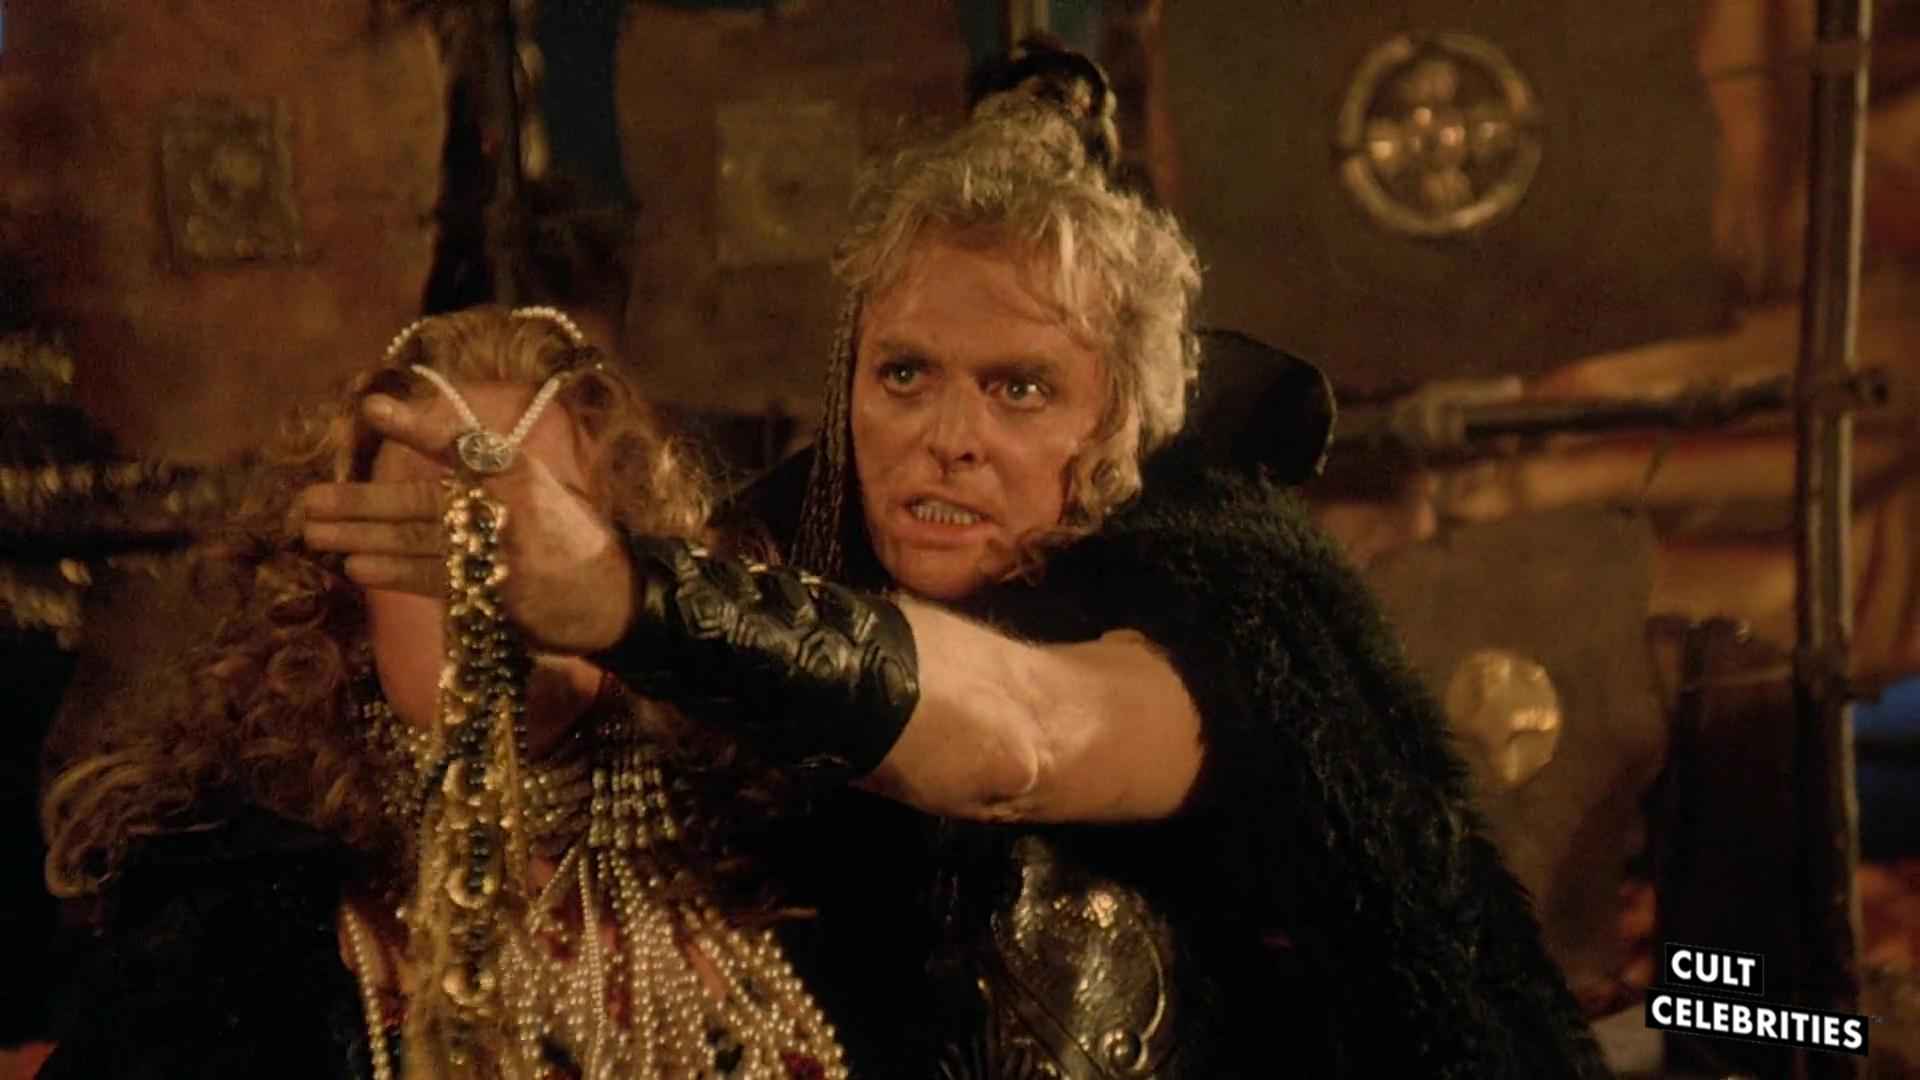 Richard Lynch in the 1987 sword-and-sorcery film The Barbarians.